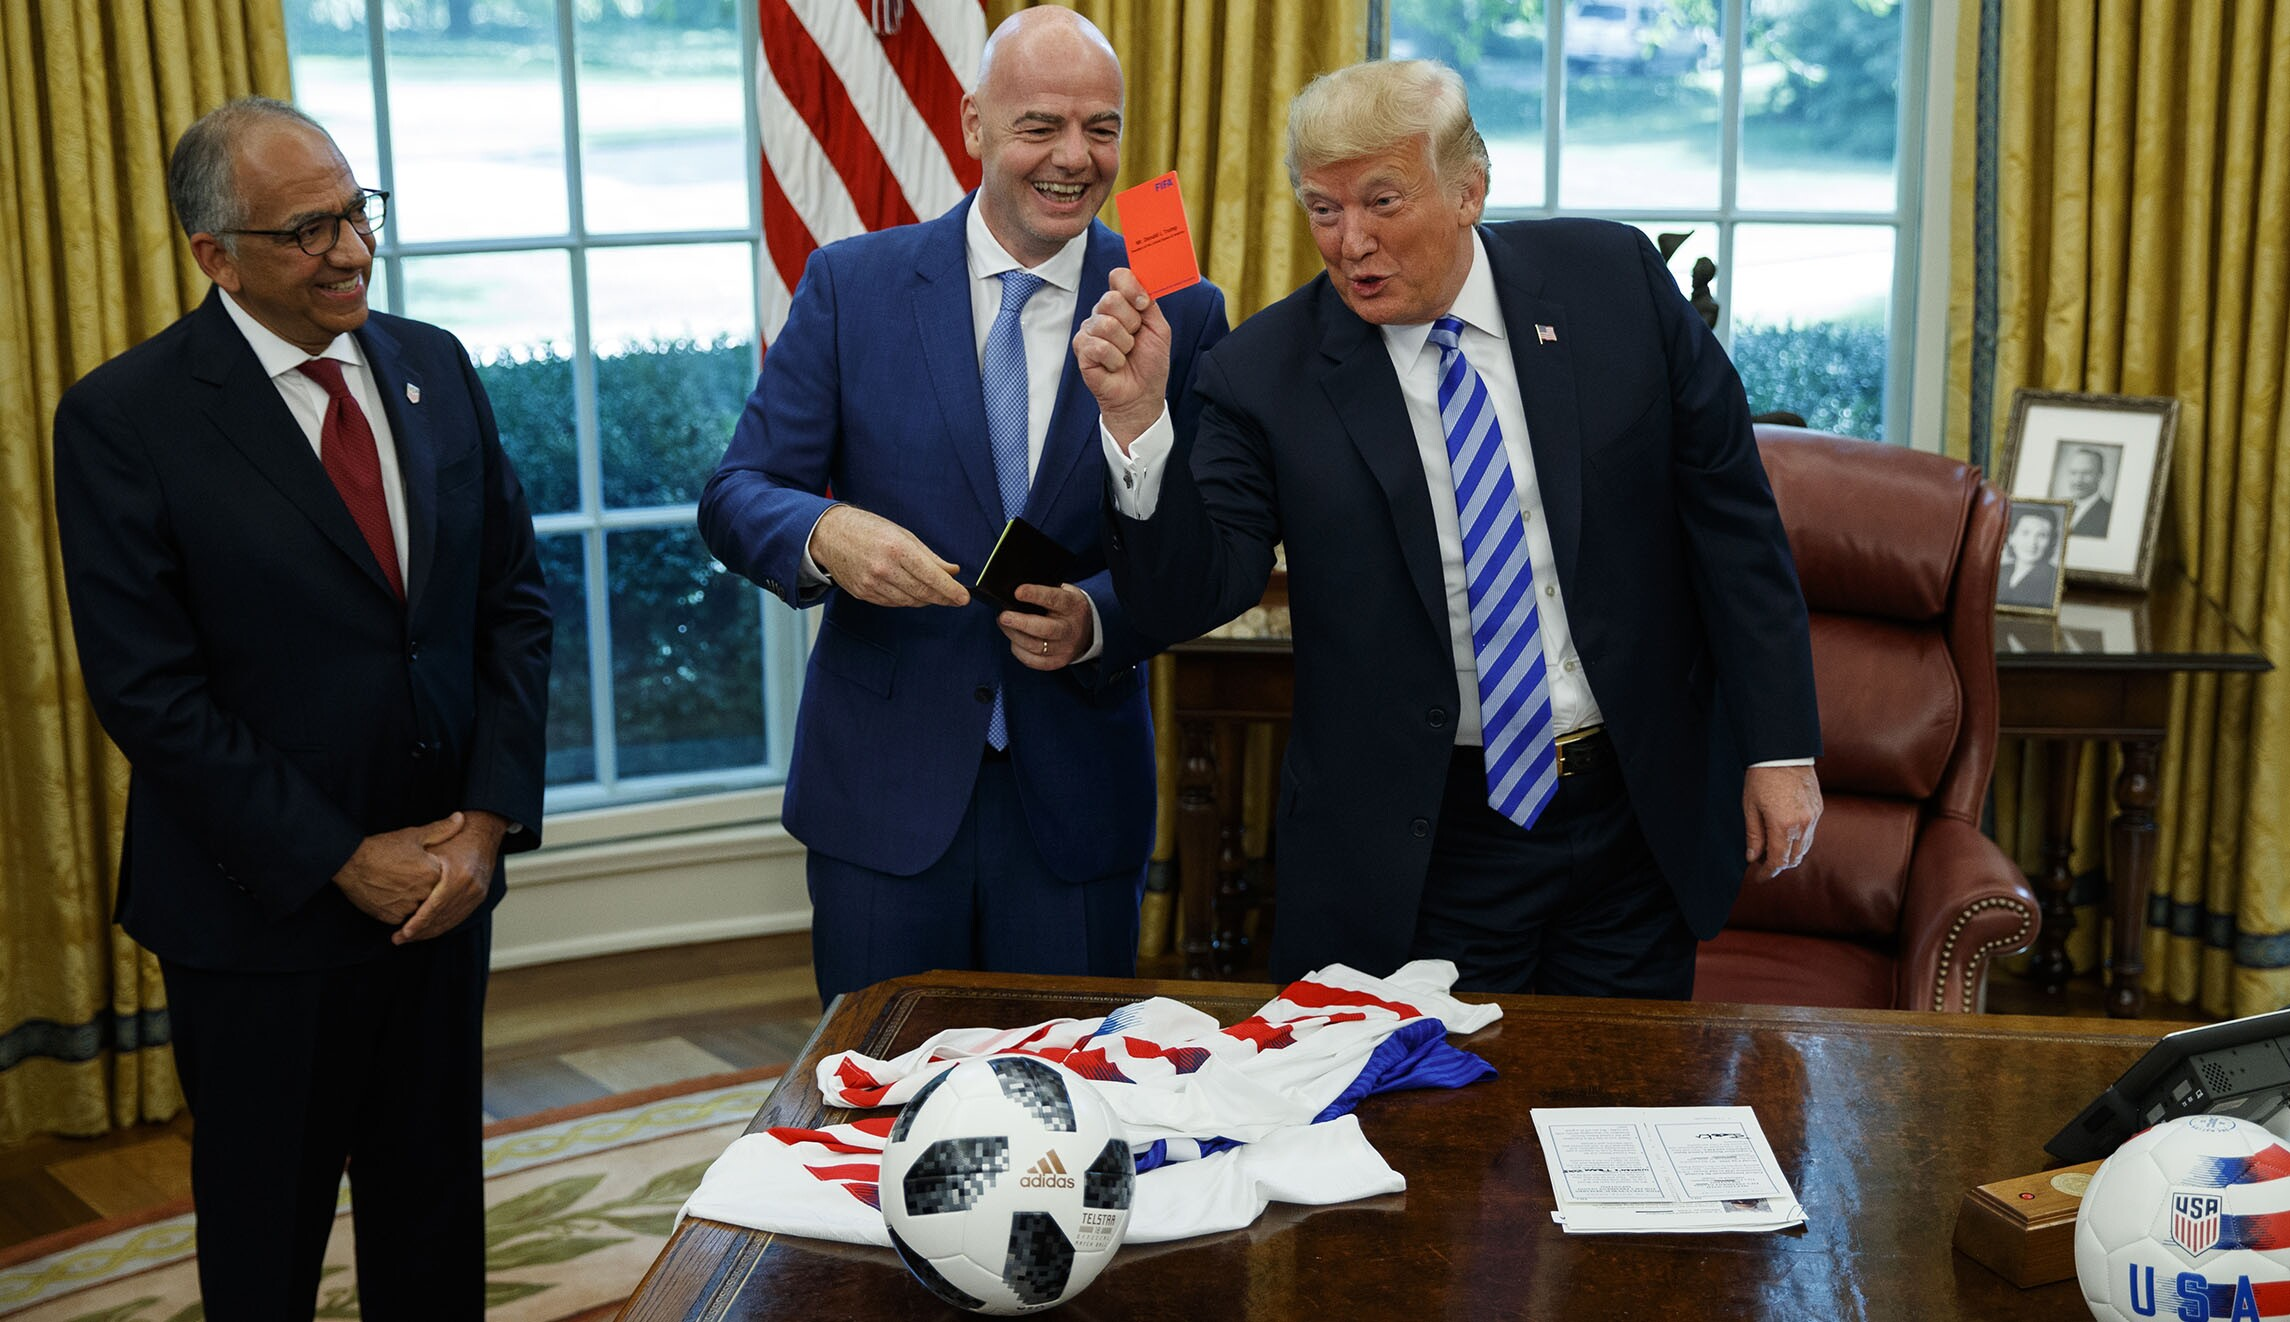 Trump Jokingly Gives Media A Soccer Red Penalty Card